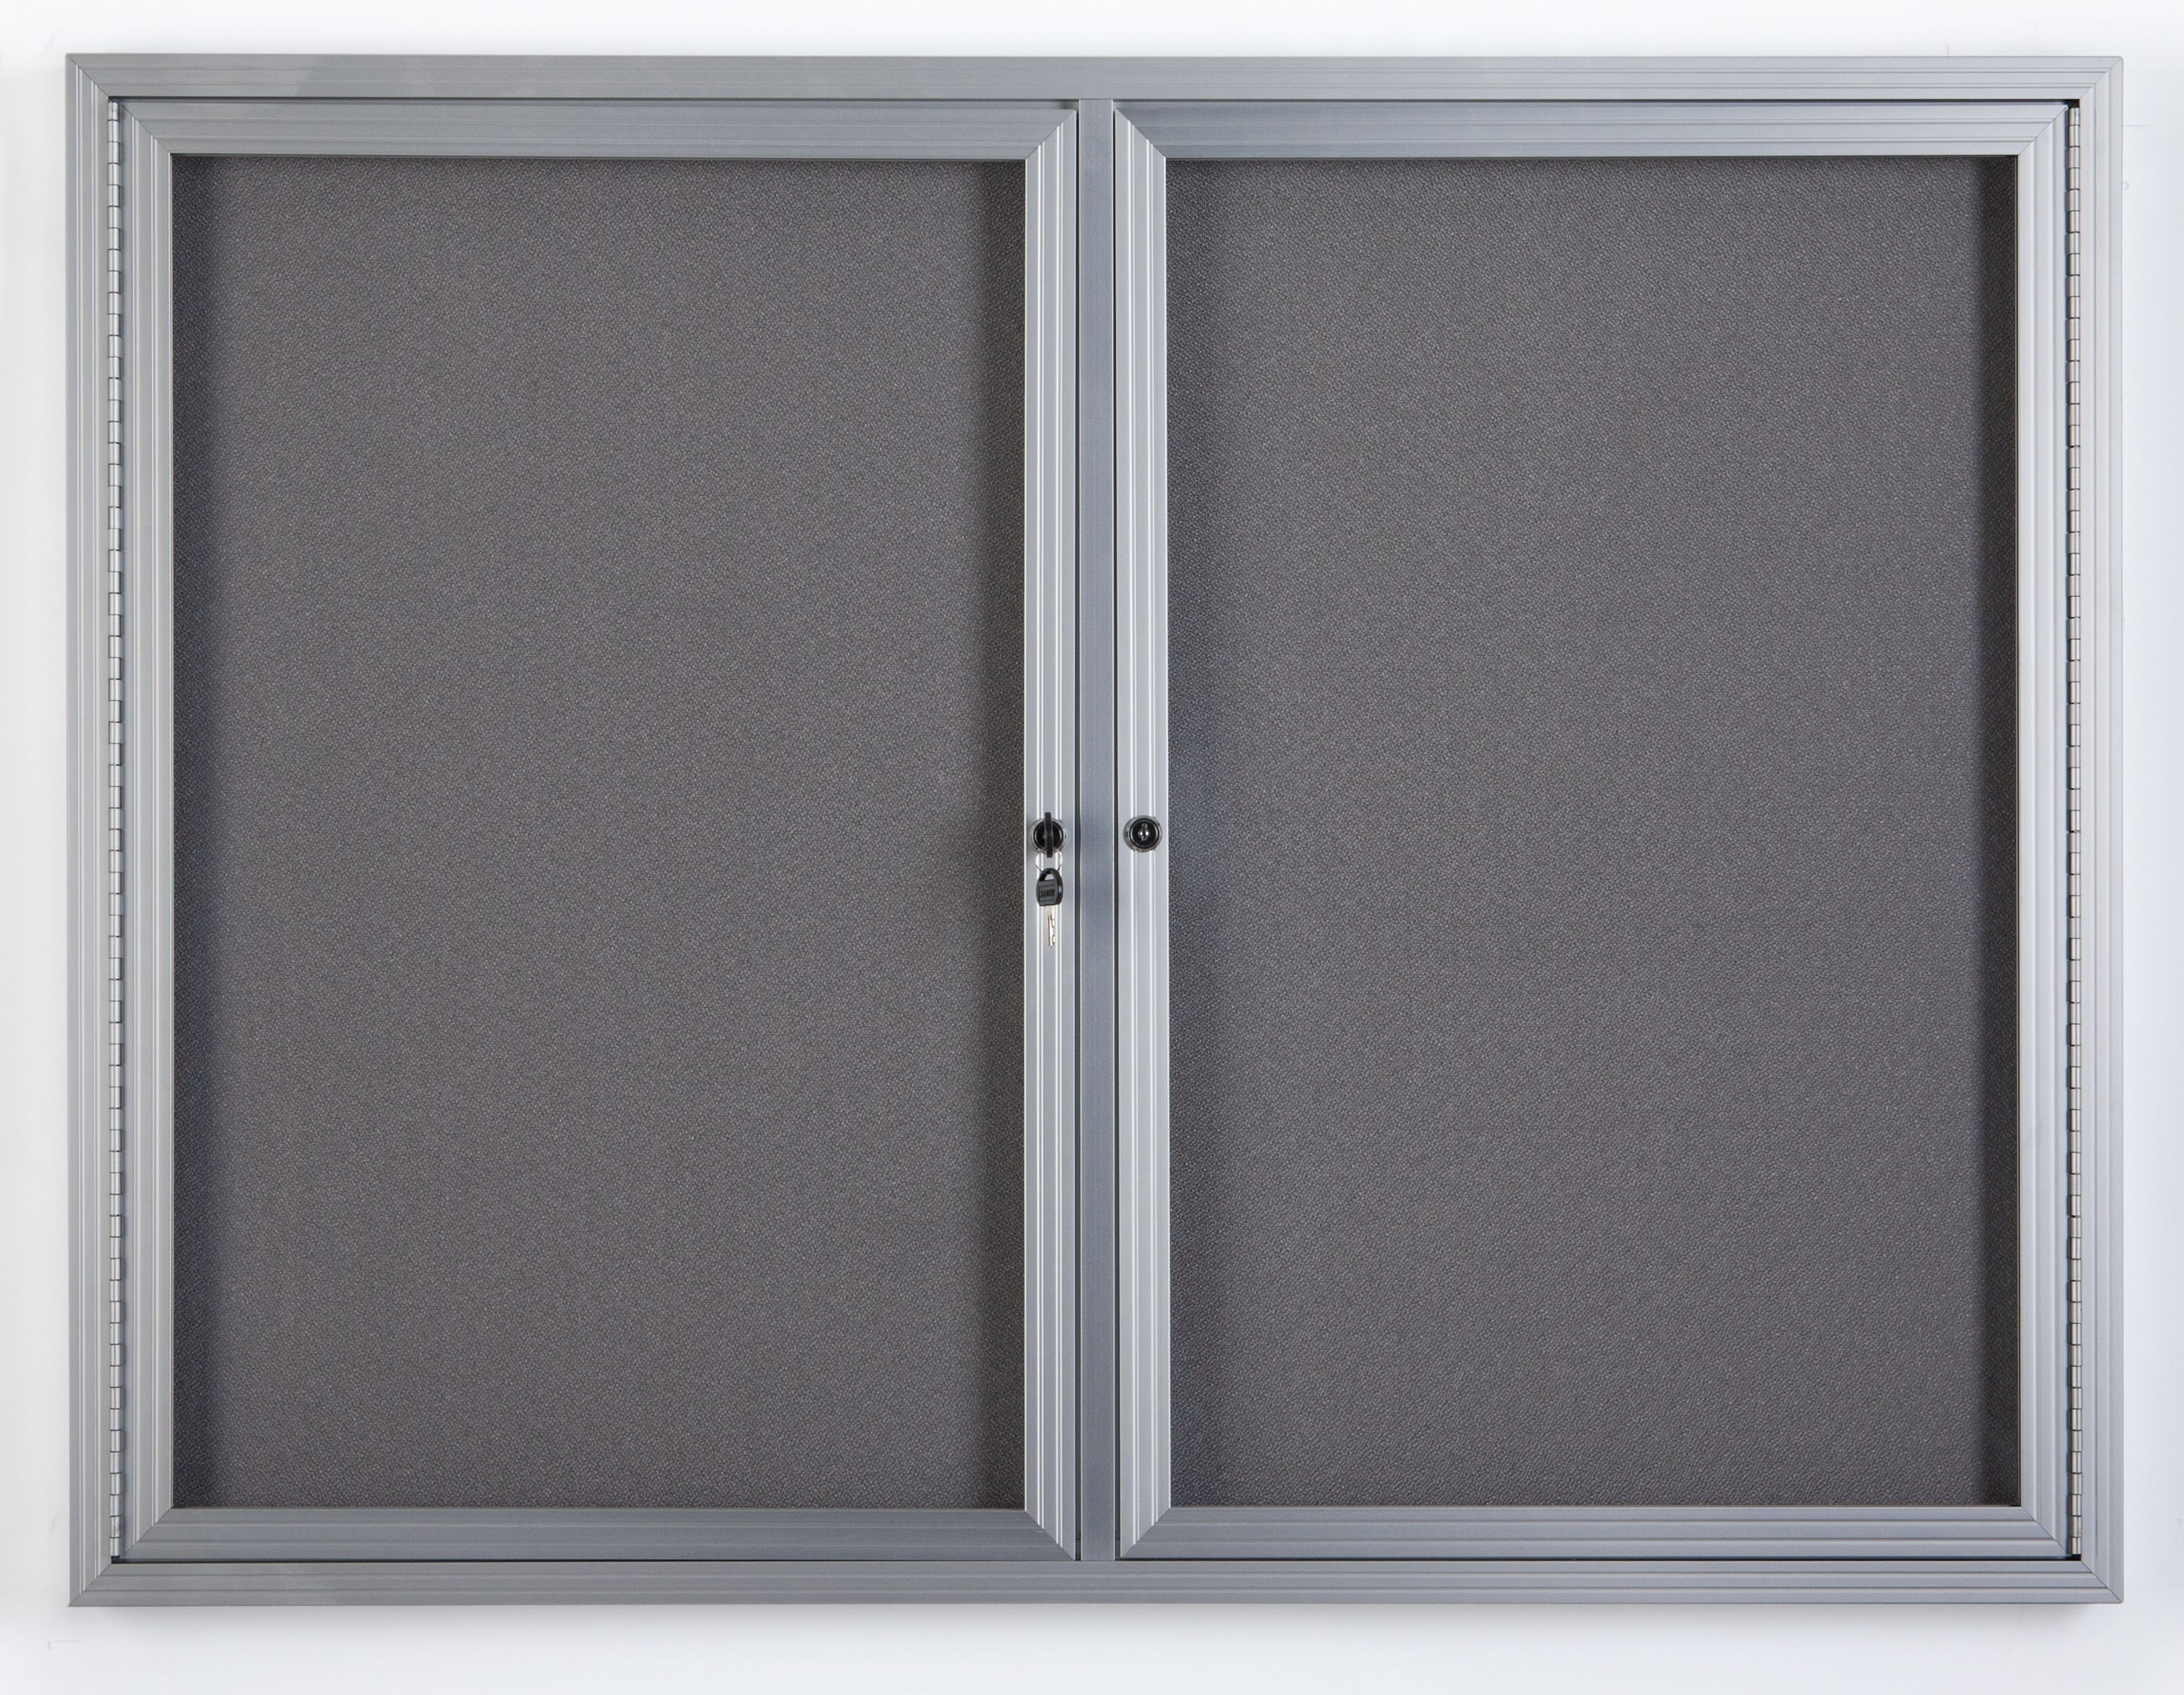 Surface Color Silver 2 Door Outdoor Enclosed Bulletin Board Size Frame Finish 3 H x 4 W Satin